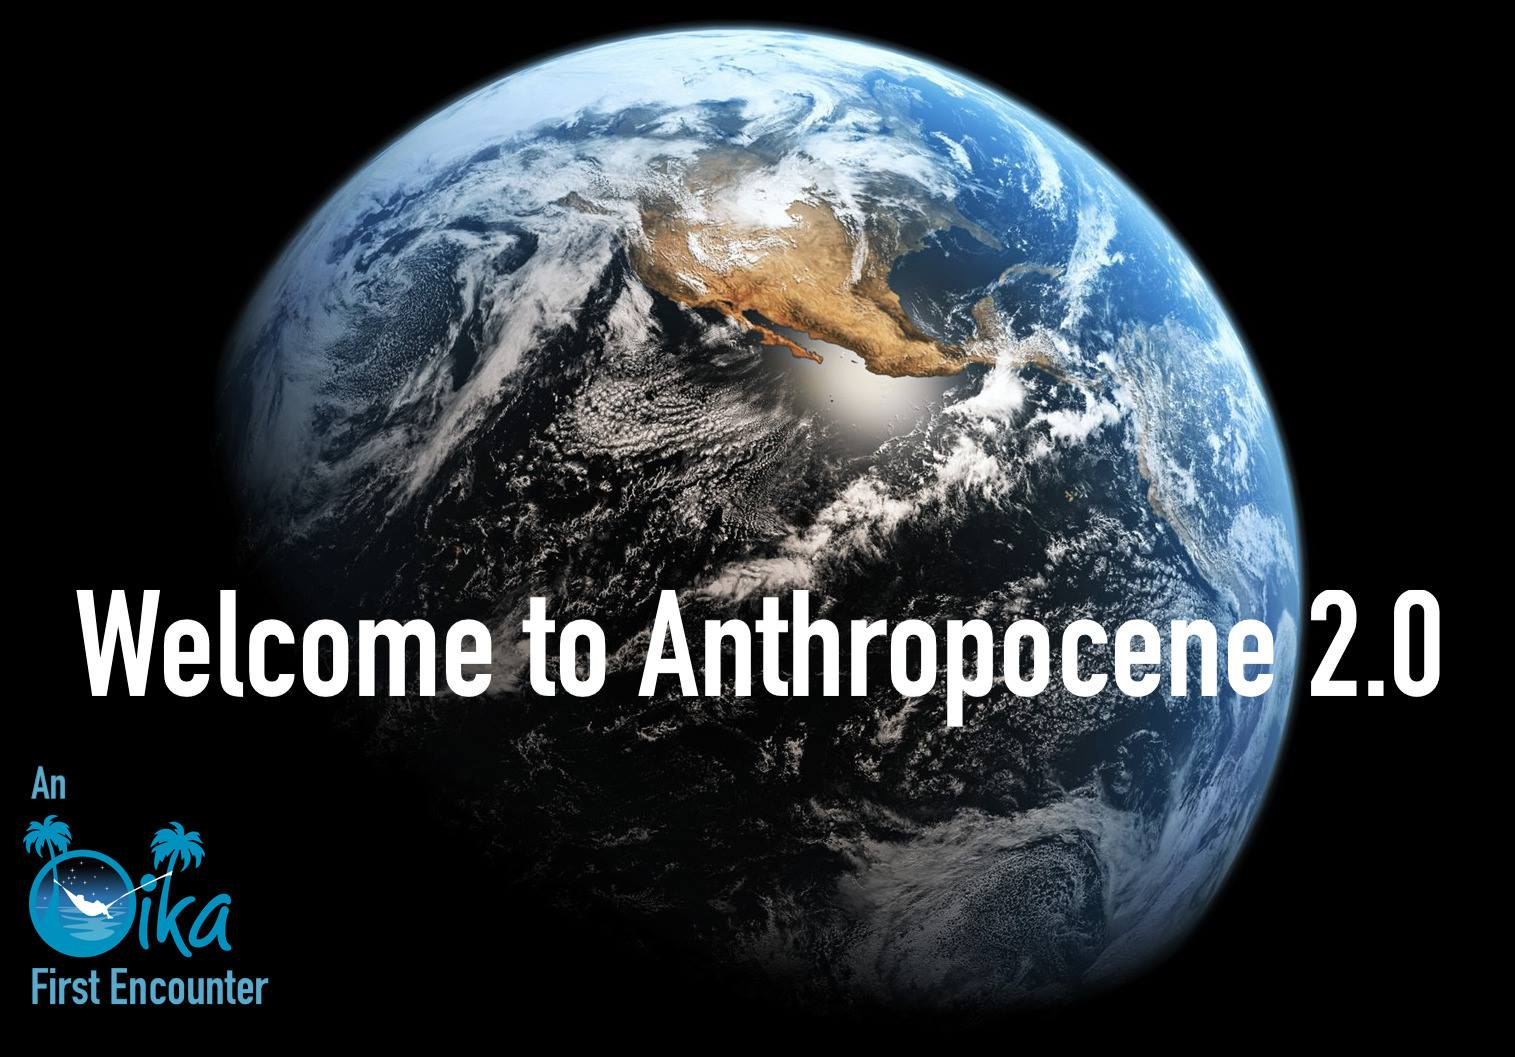 Welcome to Anthropocene 2.0